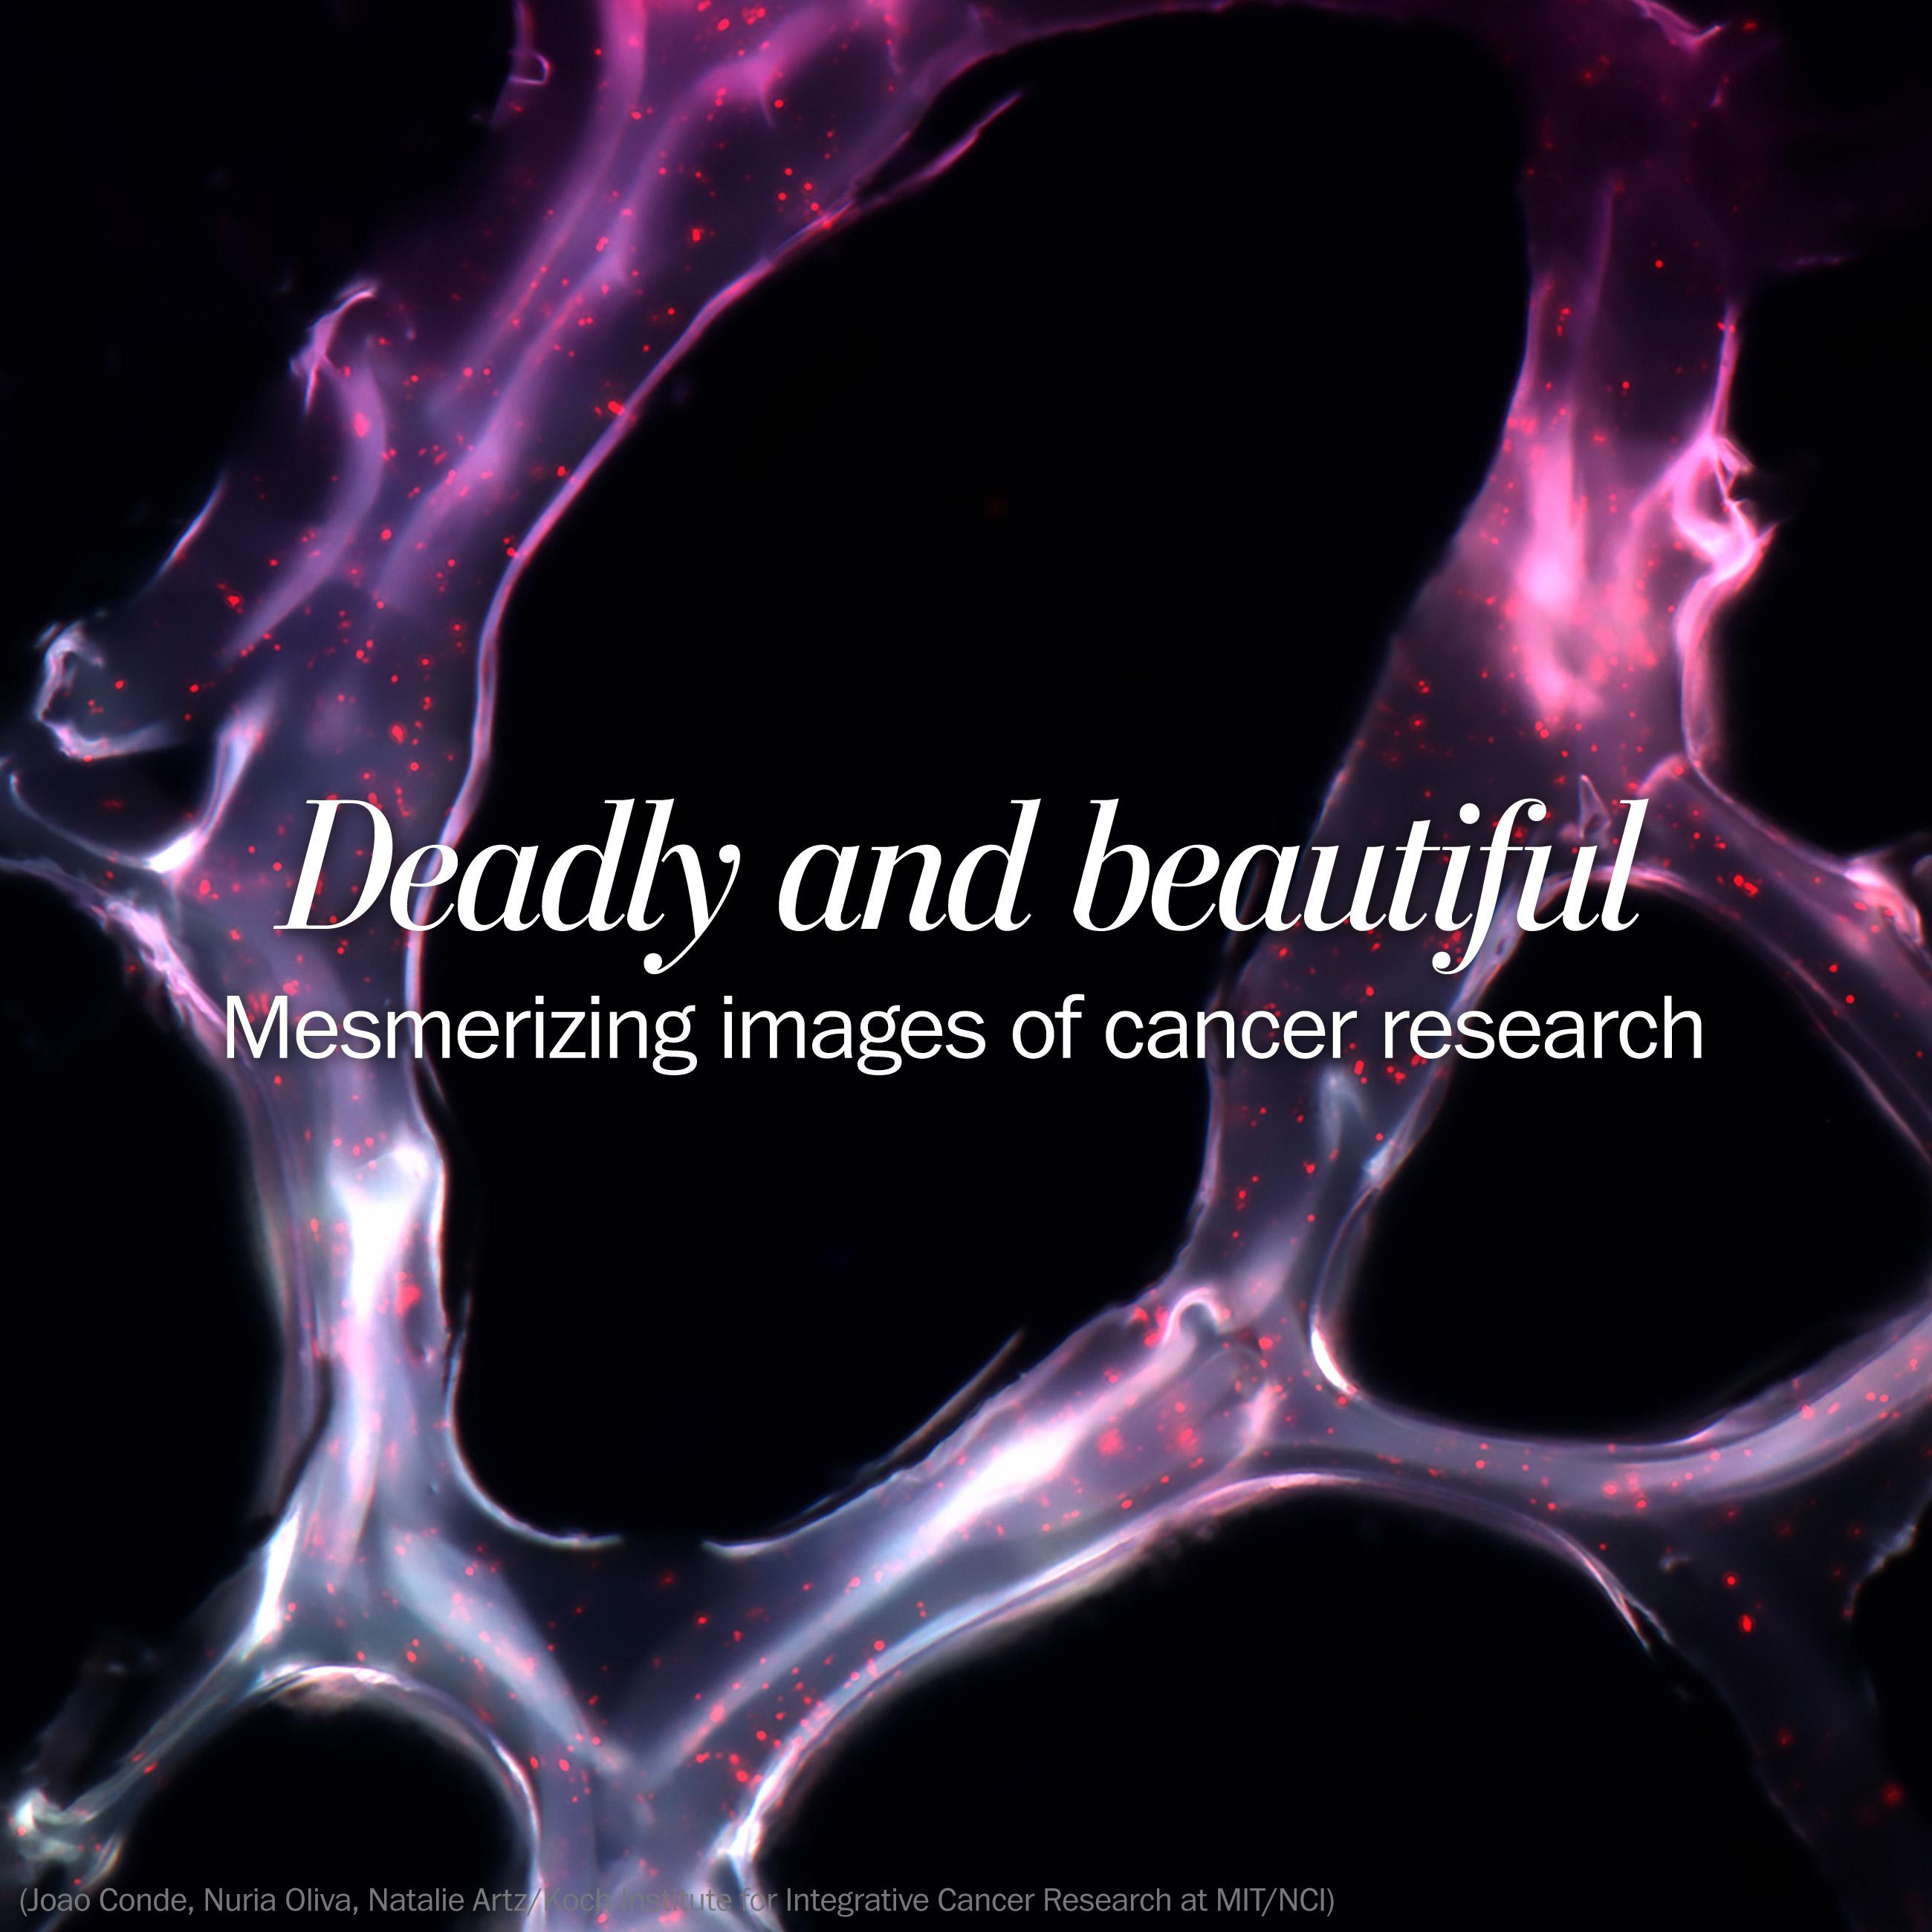 Deadly and beautiful: The mesmerizing images of cancer research